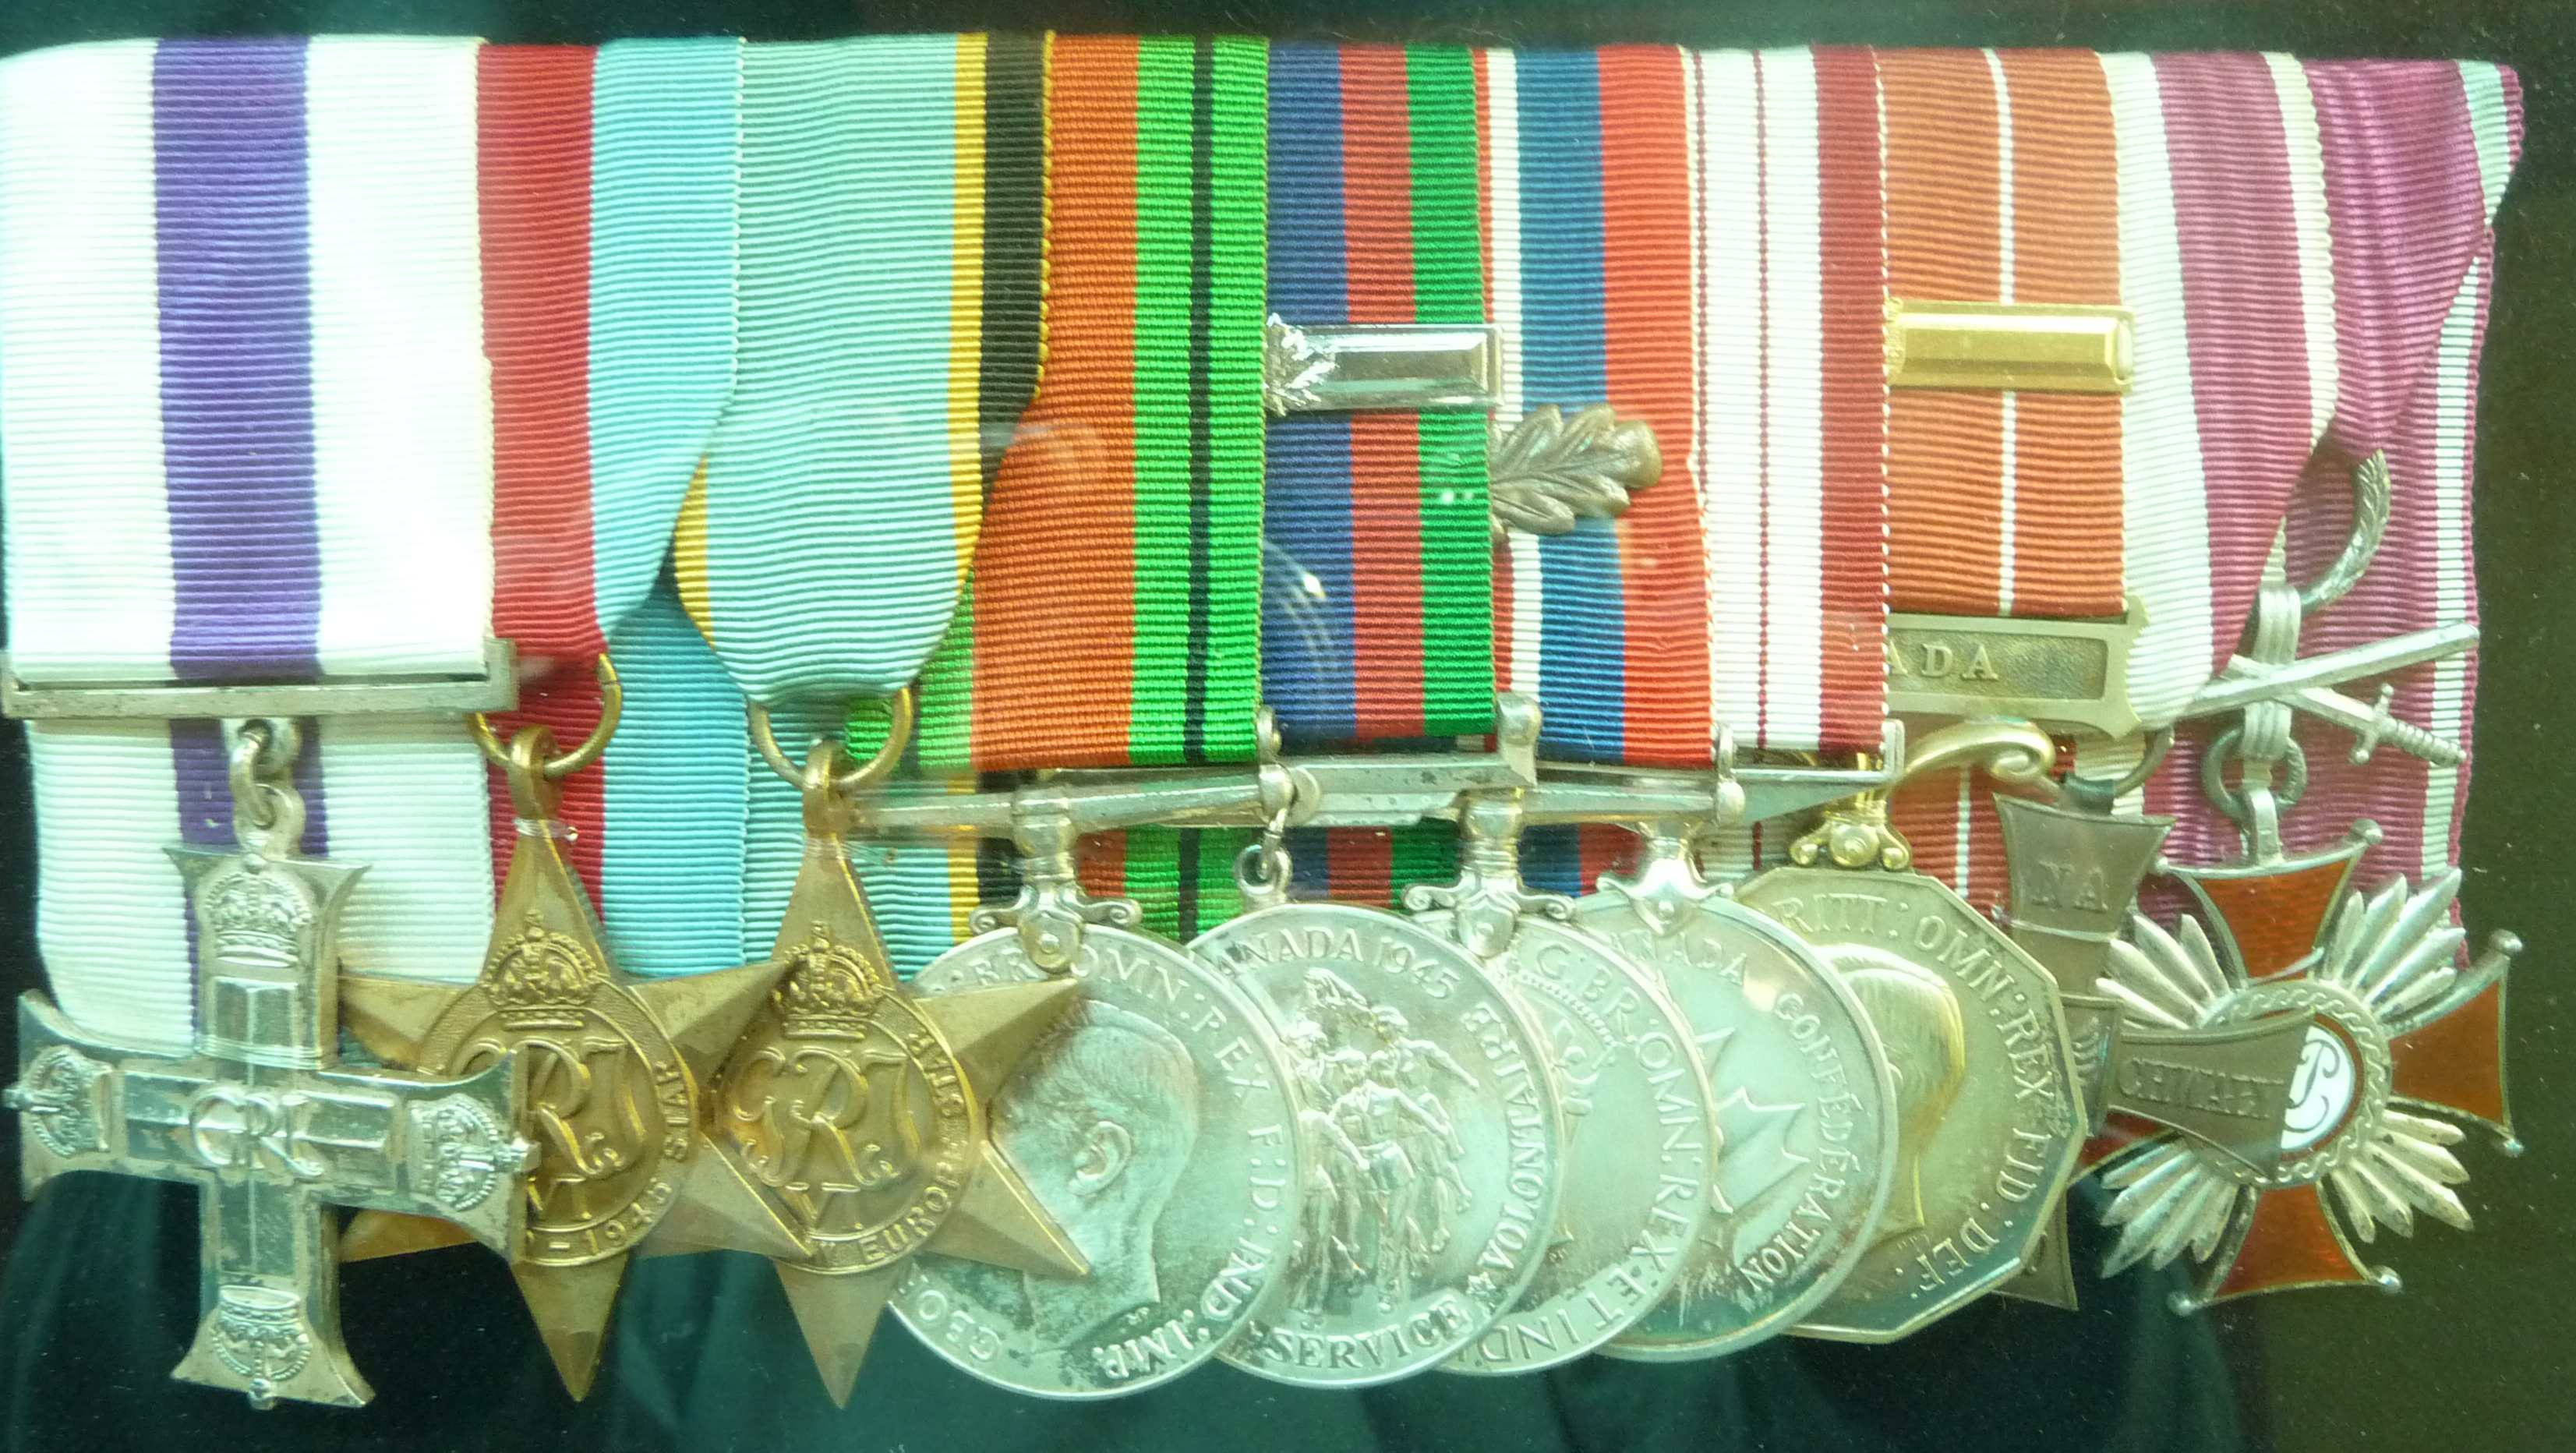 Military Medals Awarded to Hubert Brooks